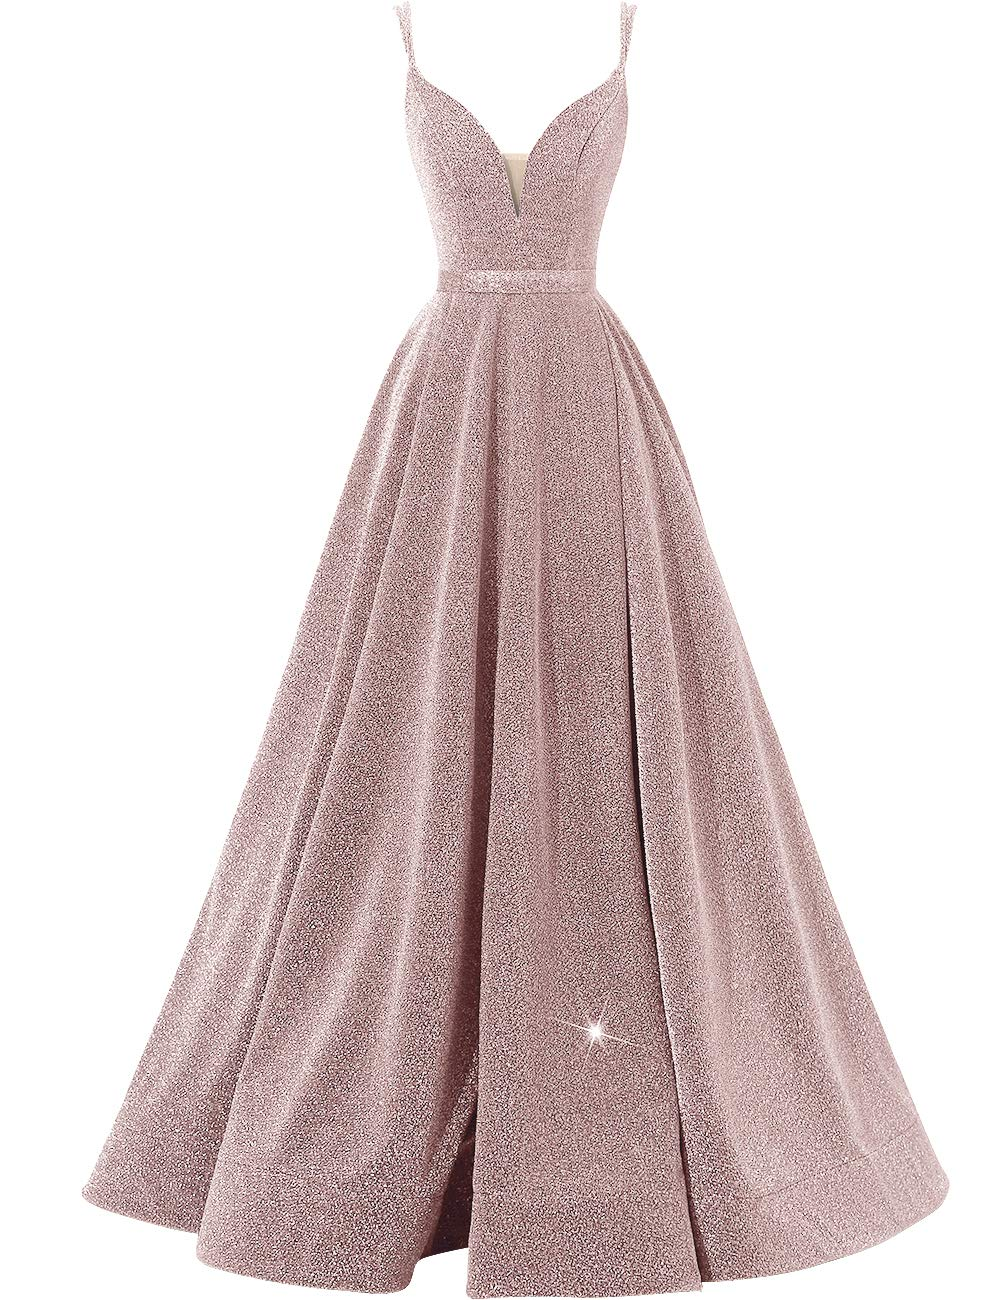 Plus Size Dresses - Women Sequin Bridesmaid Dress Sleeveless Maxi Evening Prom Dresses